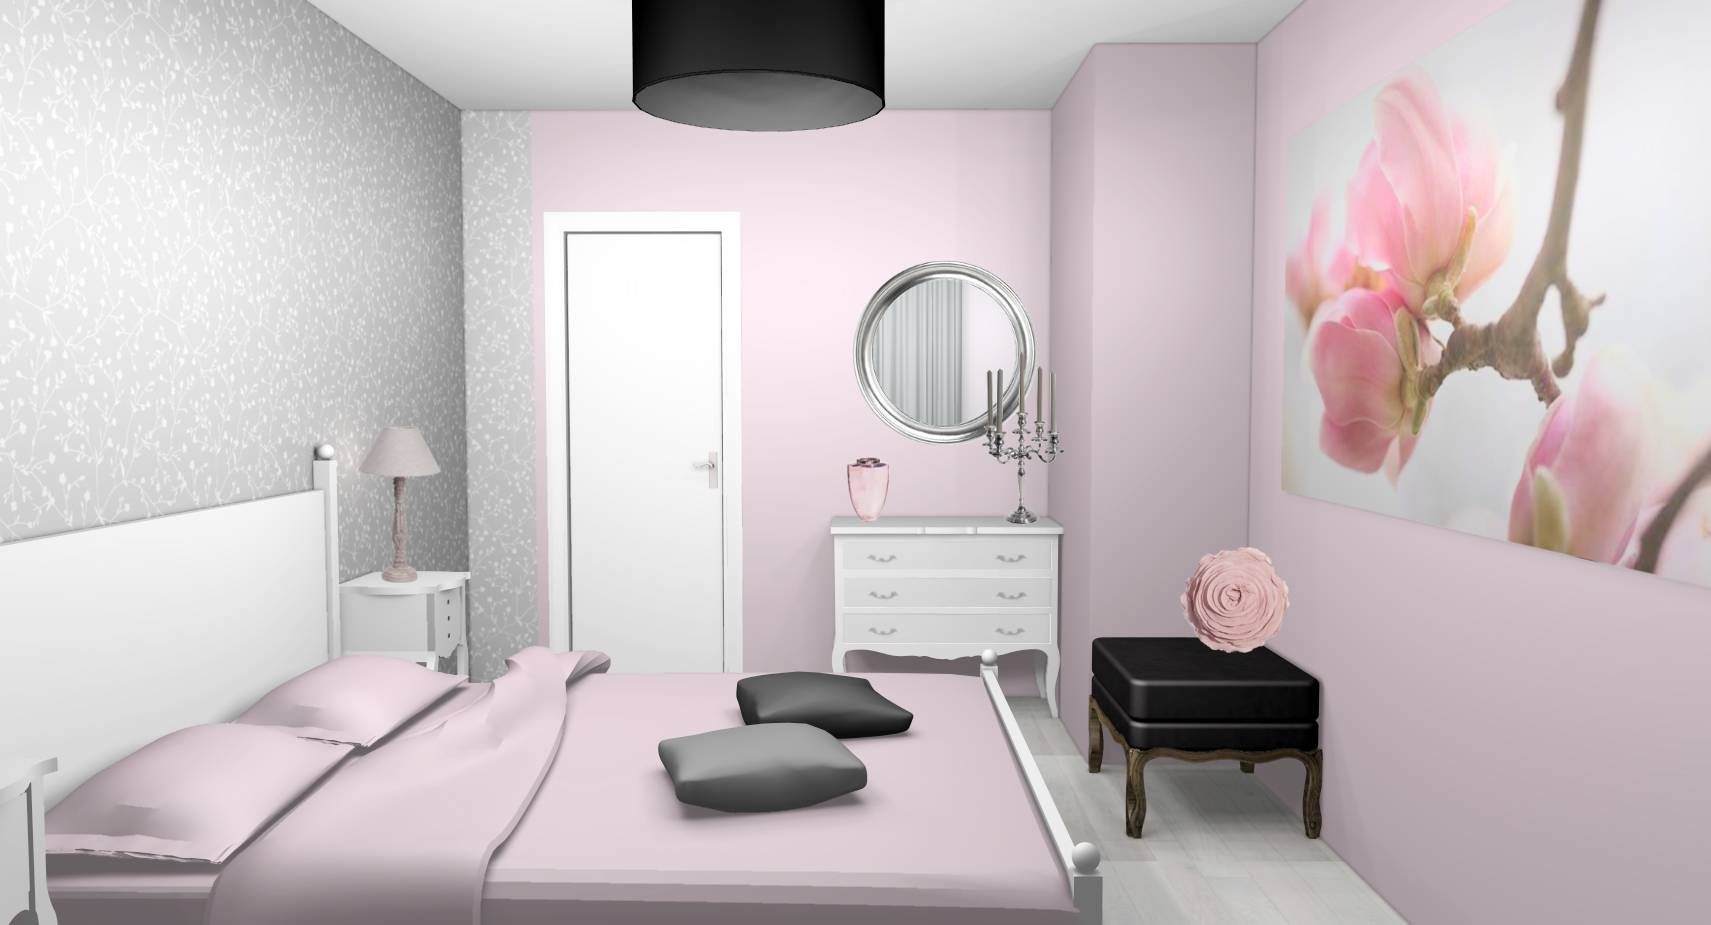 peinture rose p le archives designement v tre. Black Bedroom Furniture Sets. Home Design Ideas